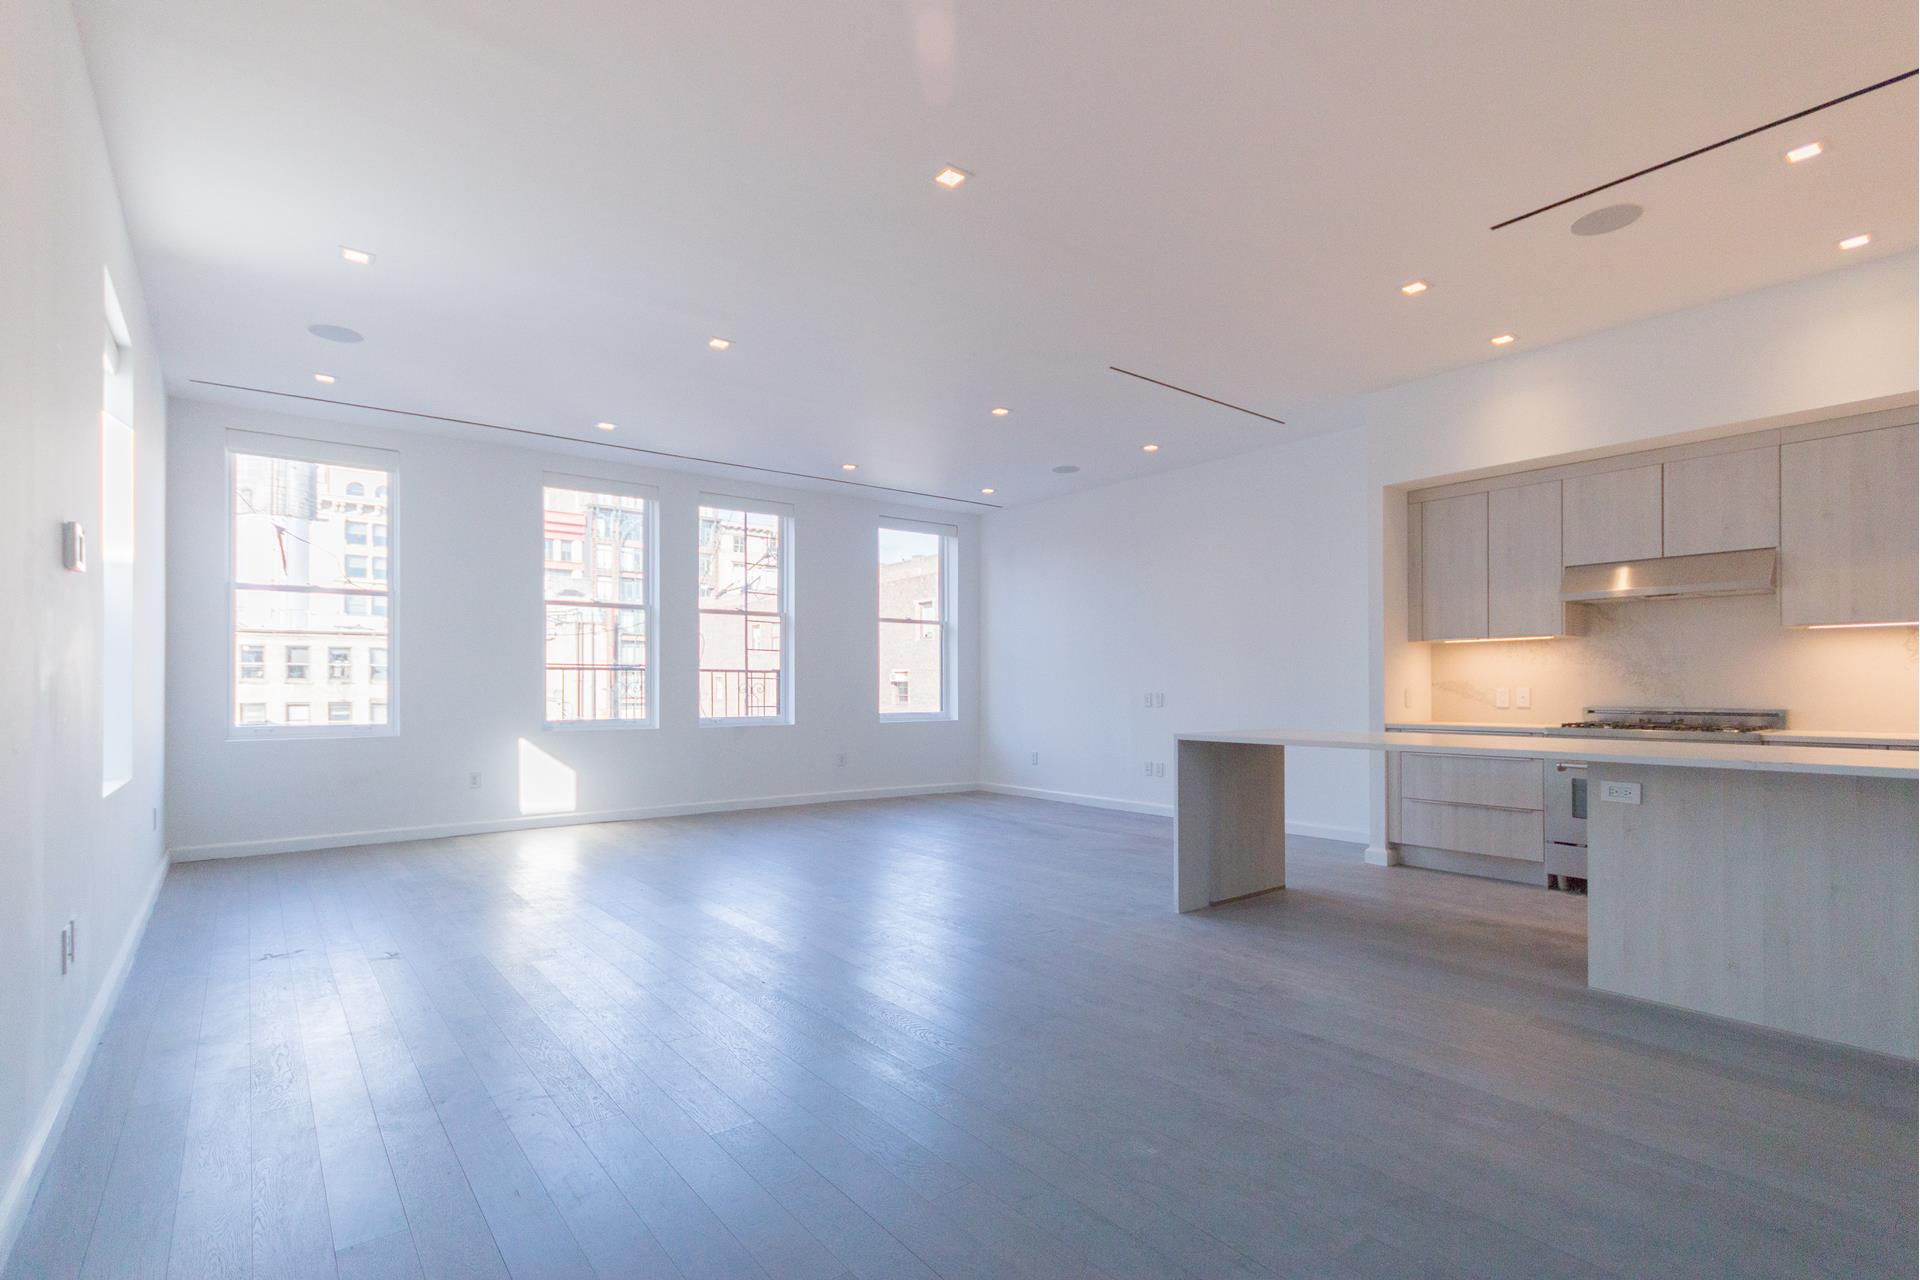 Rentals for Rent at 91 Crosby Street Ph-W 91 Crosby Street New York, New York 10012 United States